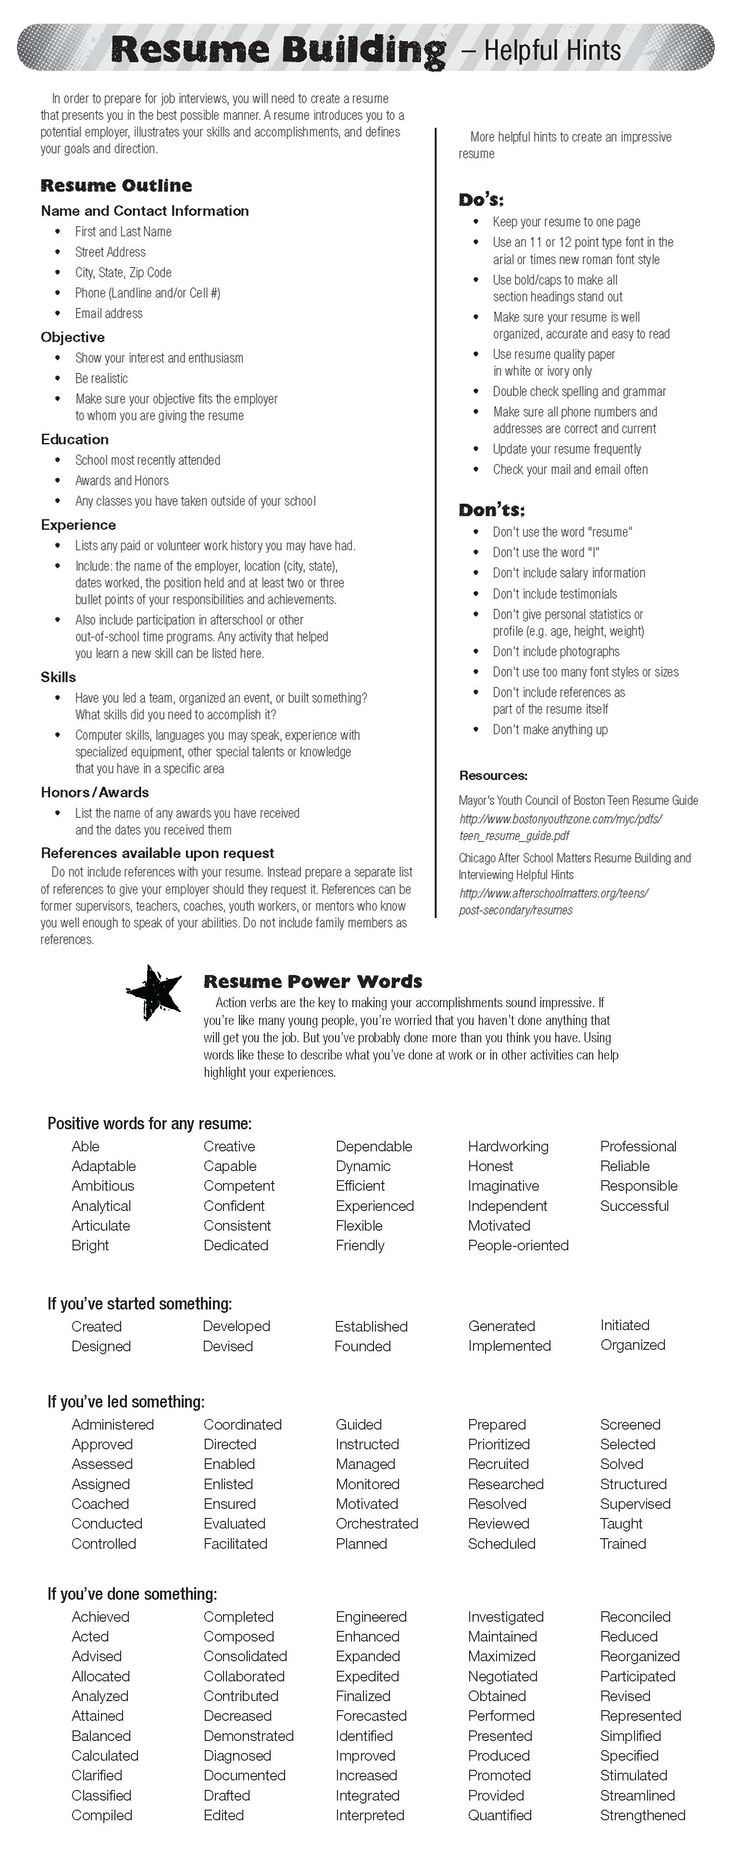 Opposenewapstandardsus  Remarkable  Ideas About Resume On Pinterest  Cv Format Resume Cv And  With Heavenly  Ideas About Resume On Pinterest  Cv Format Resume Cv And Resume Templates With Extraordinary How To Include References In Resume Also Database Developer Resume In Addition Work Experience Resume Examples And Free Job Resume As Well As Assistant Manager Resume Sample Additionally Change Management Resume From Pinterestcom With Opposenewapstandardsus  Heavenly  Ideas About Resume On Pinterest  Cv Format Resume Cv And  With Extraordinary  Ideas About Resume On Pinterest  Cv Format Resume Cv And Resume Templates And Remarkable How To Include References In Resume Also Database Developer Resume In Addition Work Experience Resume Examples From Pinterestcom